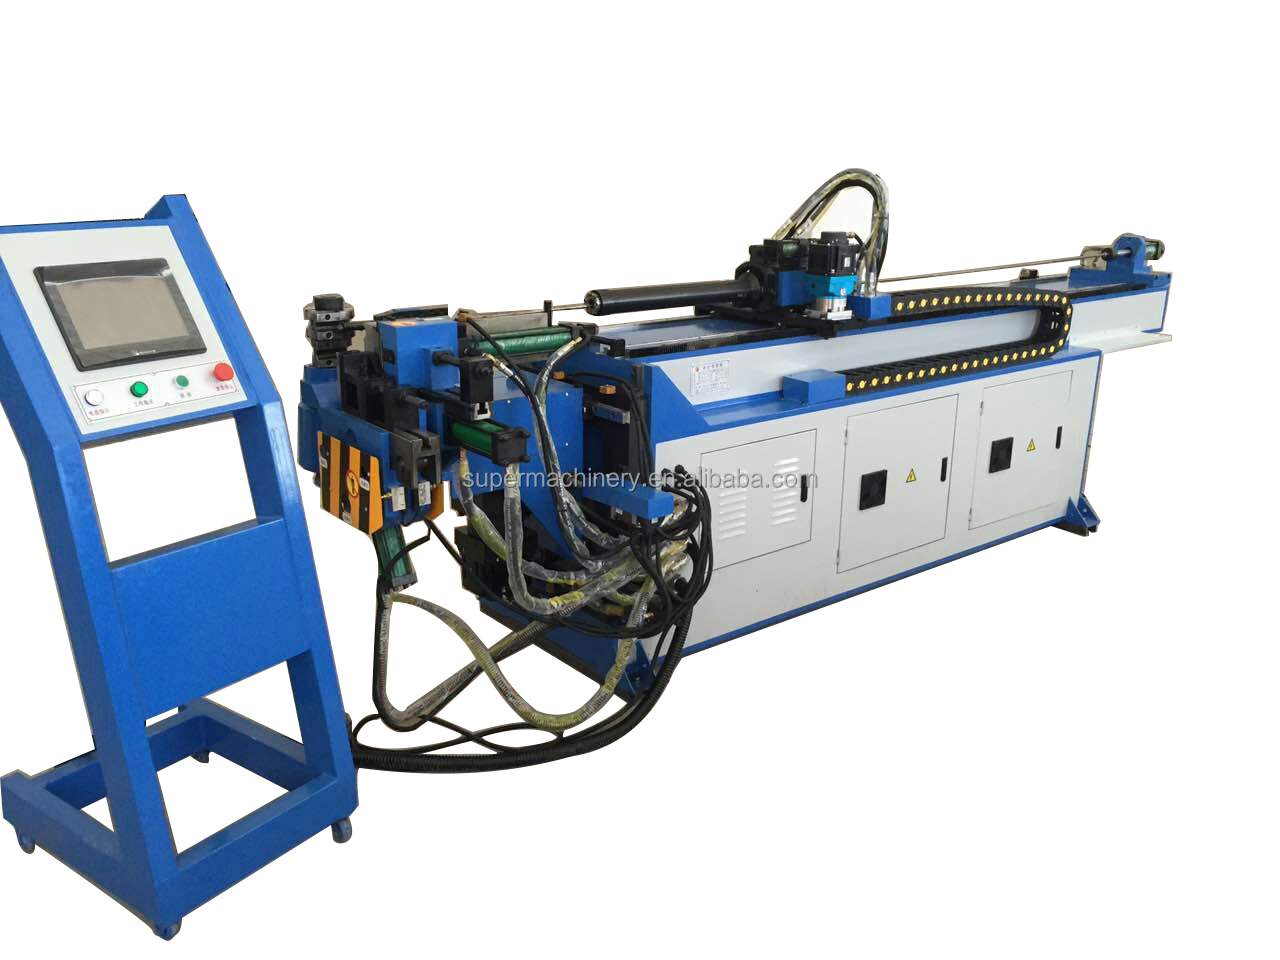 Quality pneumatic hydraulic pipe bender